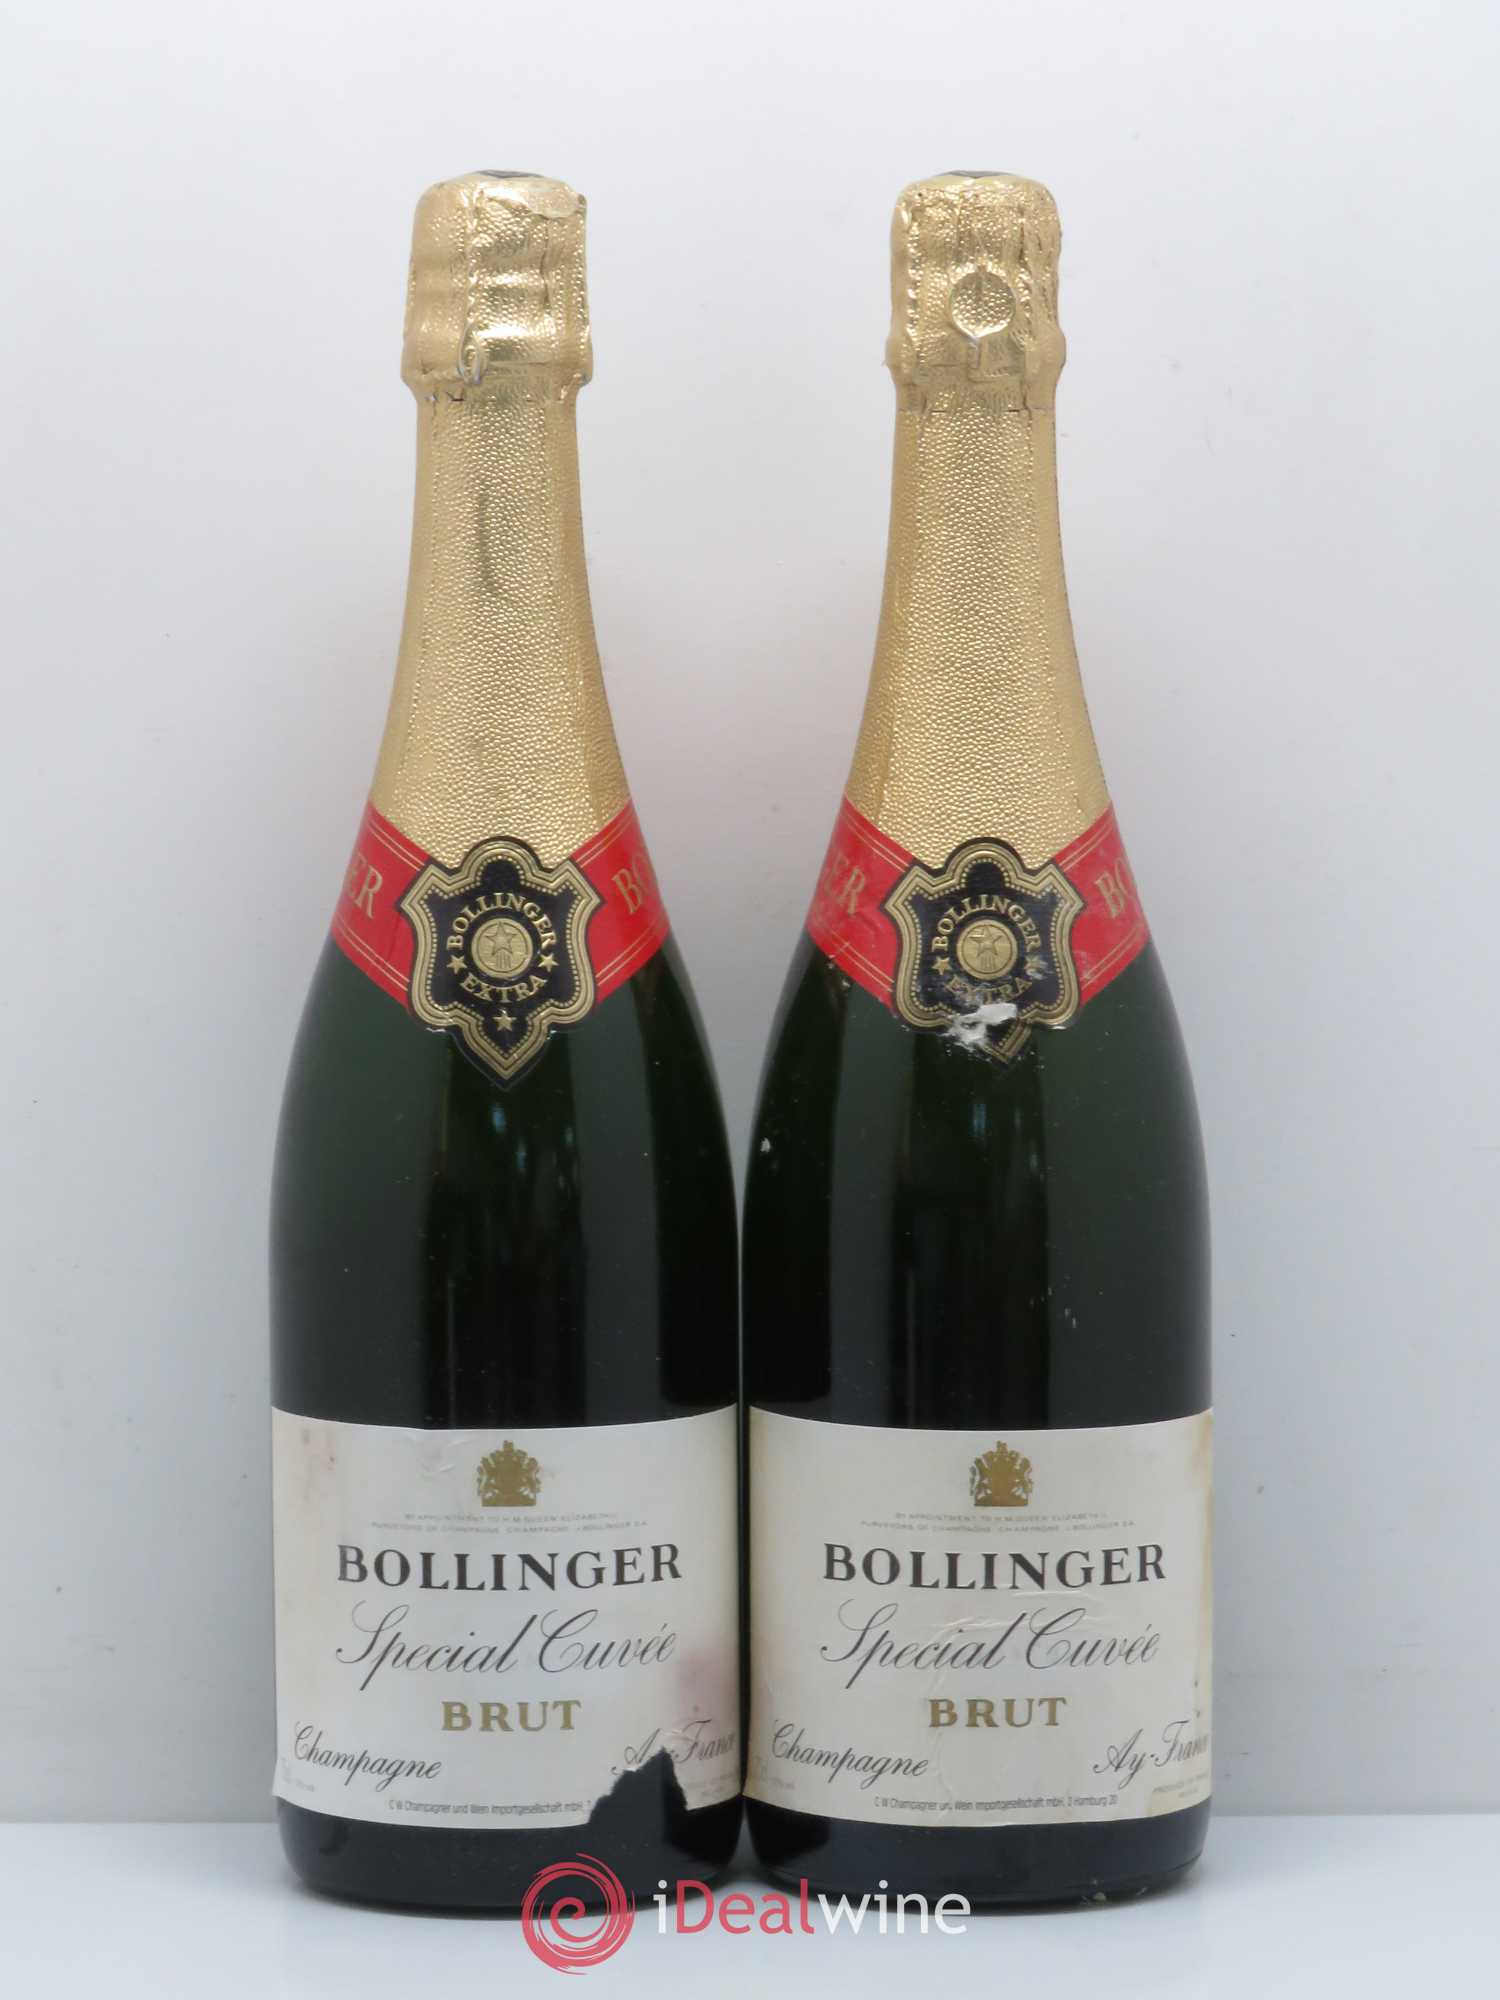 Special Cuvée Bollinger Lot Of 2 Bottles